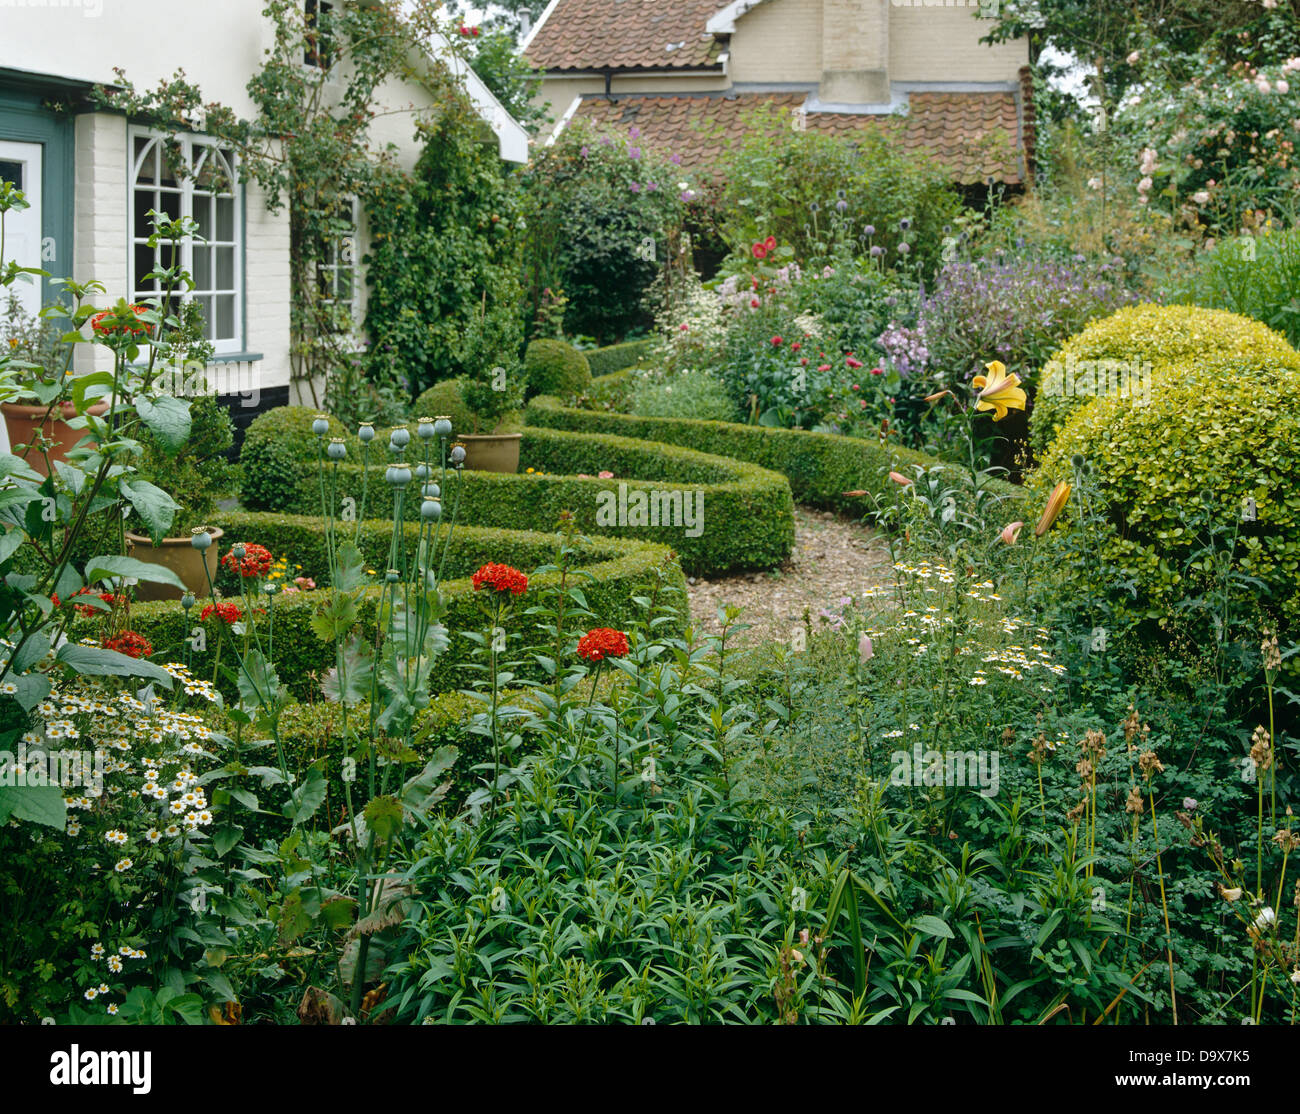 English Cottage Garden With Gravel Path And Low Clipped Box Hedging Round Gold Privet Shrubs